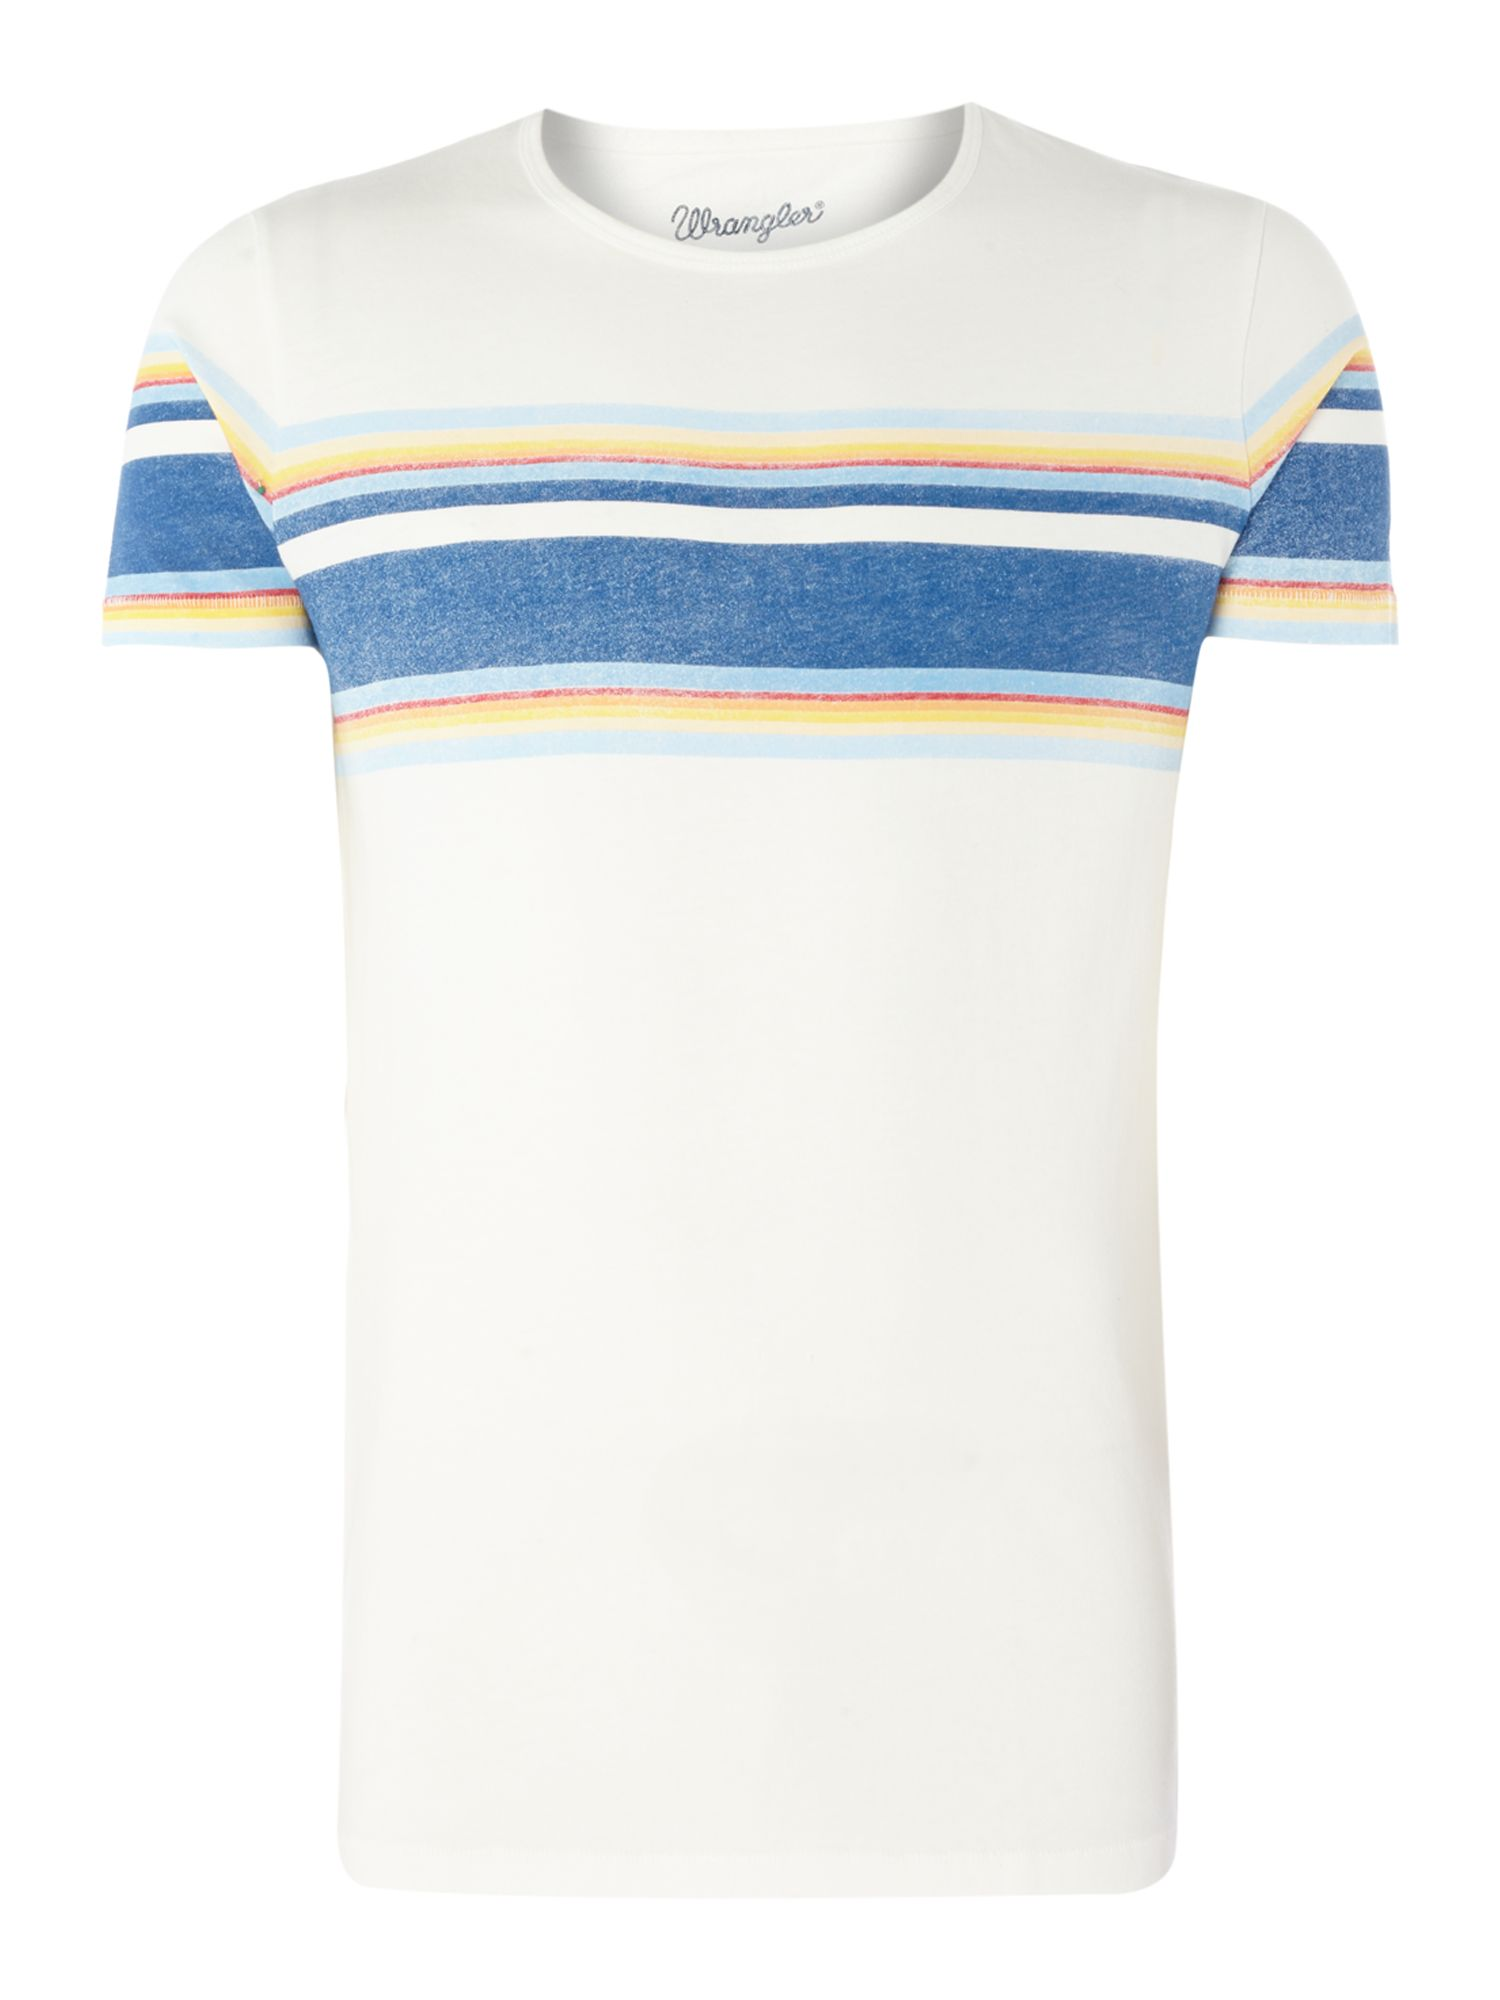 Men's Wrangler Retro Striped Short Sleeve T-Shirt, Off White